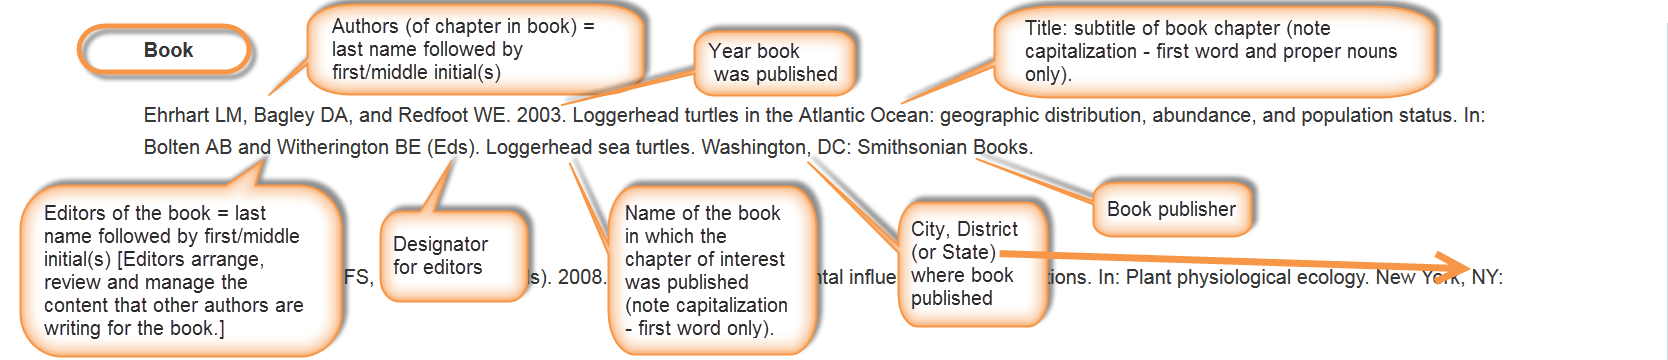 Parts of a book chapter citation